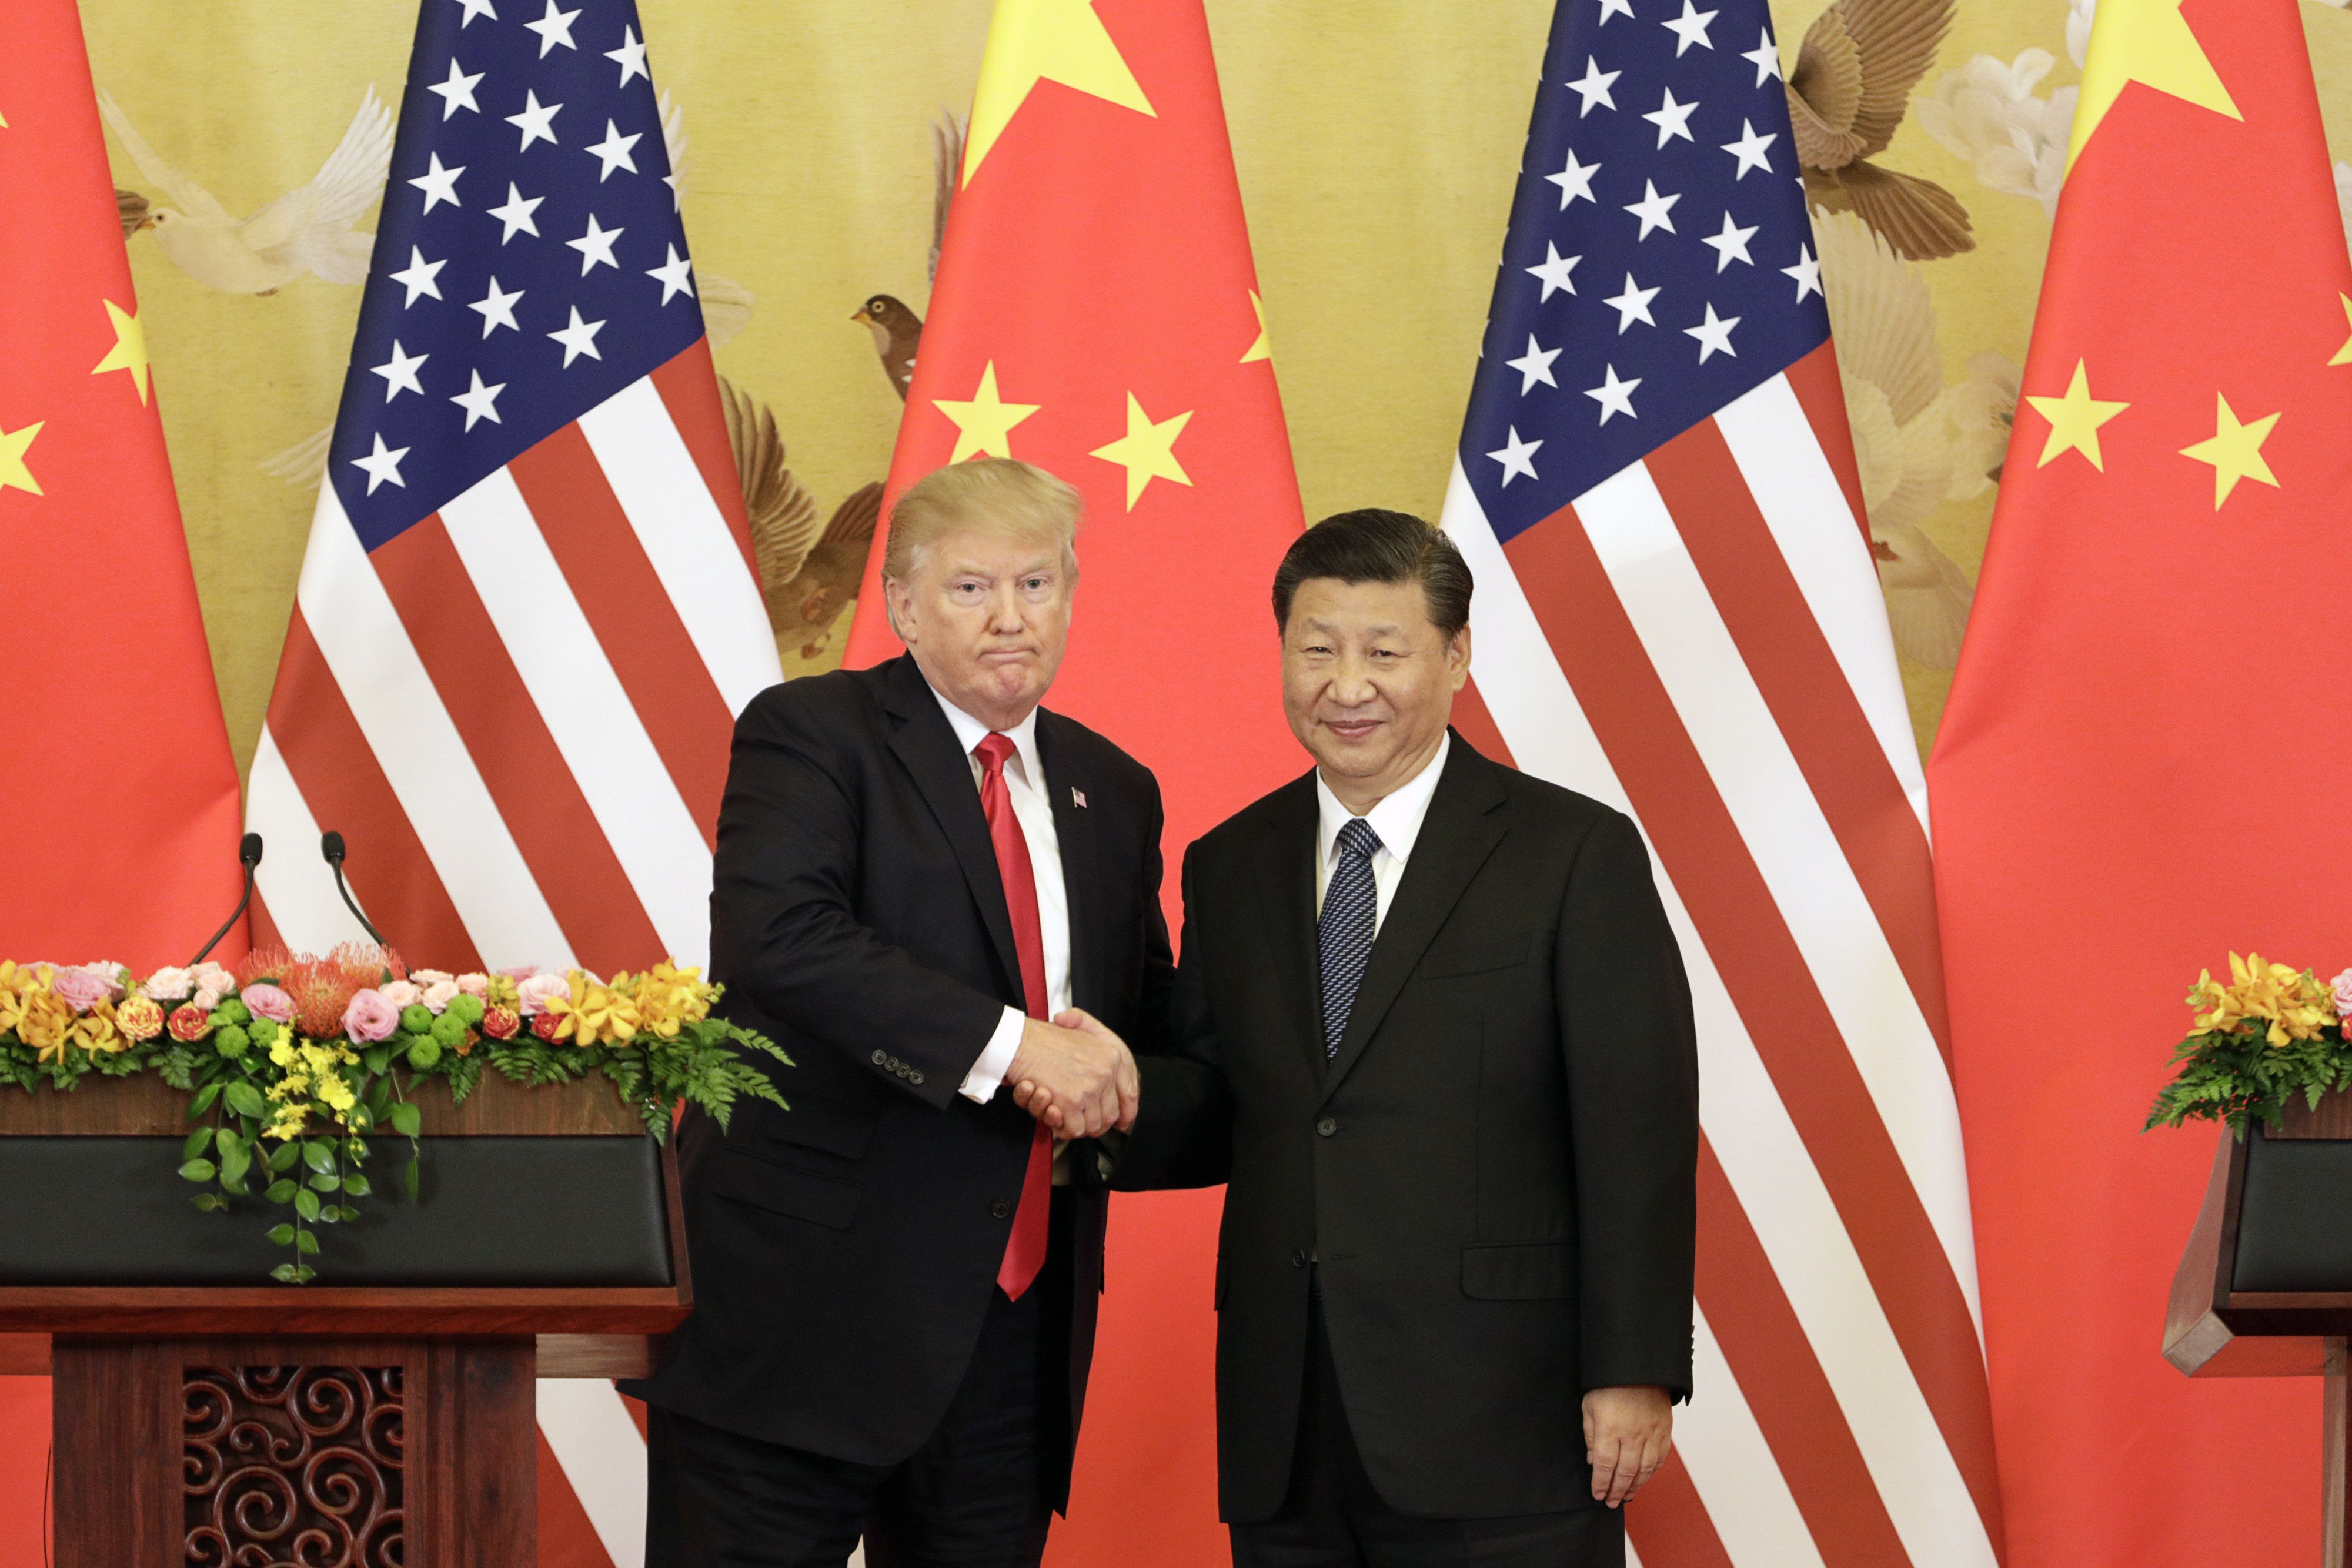 FILE: U.S. President Donald Trump, left, and Xi Jinping, China's president, shake hands during a news conference at the Great Hall of the People in Beijing, China, on Thursday, Nov. 9, 2017. The one year anniversary of U.S. President Donald Trump's inauguration falls on Saturday, January 20, 2018. Our editors select the best archive images looking back over Trumps first year in office. Photographer: Qilai Shen/Bloomberg via Getty Images